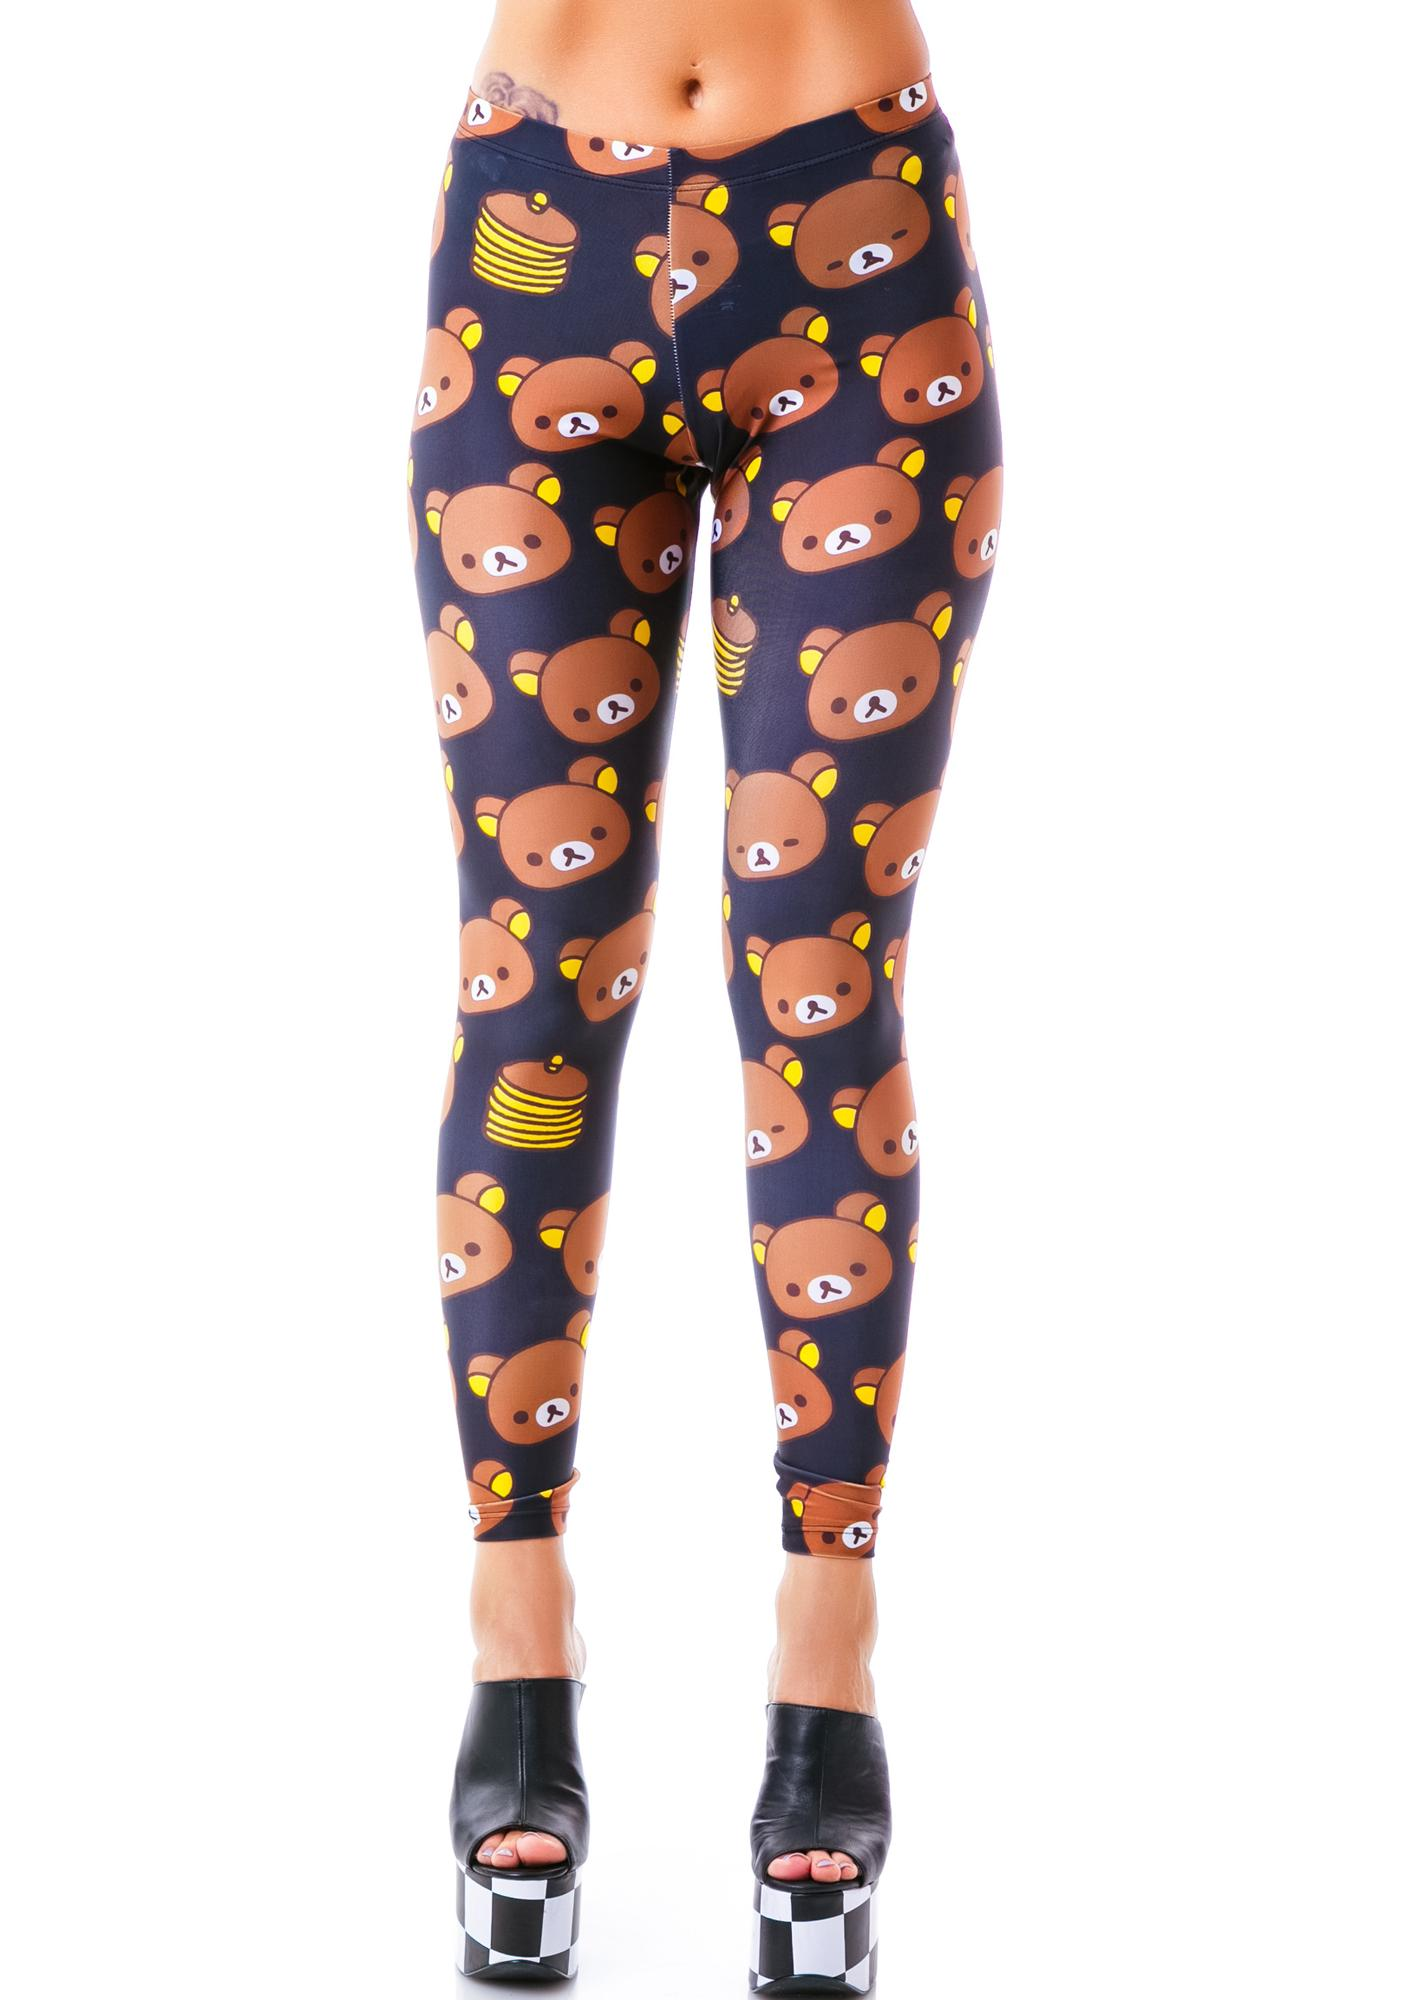 Japan L.A. Rilakkuma Pancake Leggings